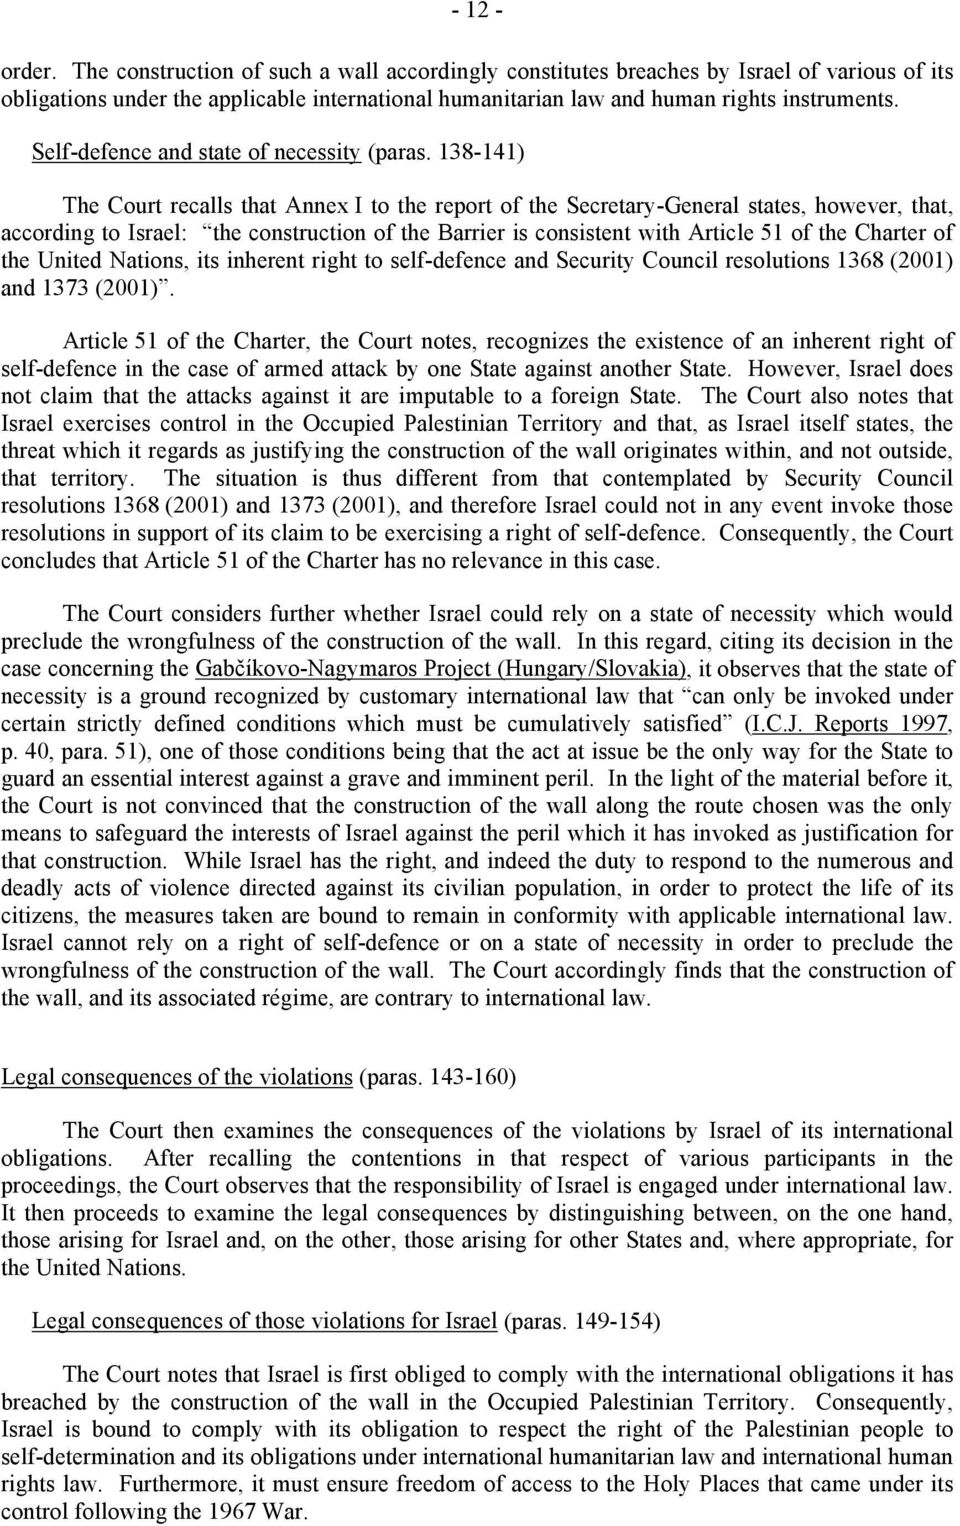 138-141) The Court recalls that Annex I to the report of the Secretary-General states, however, that, according to Israel: the construction of the Barrier is consistent with Article 51 of the Charter